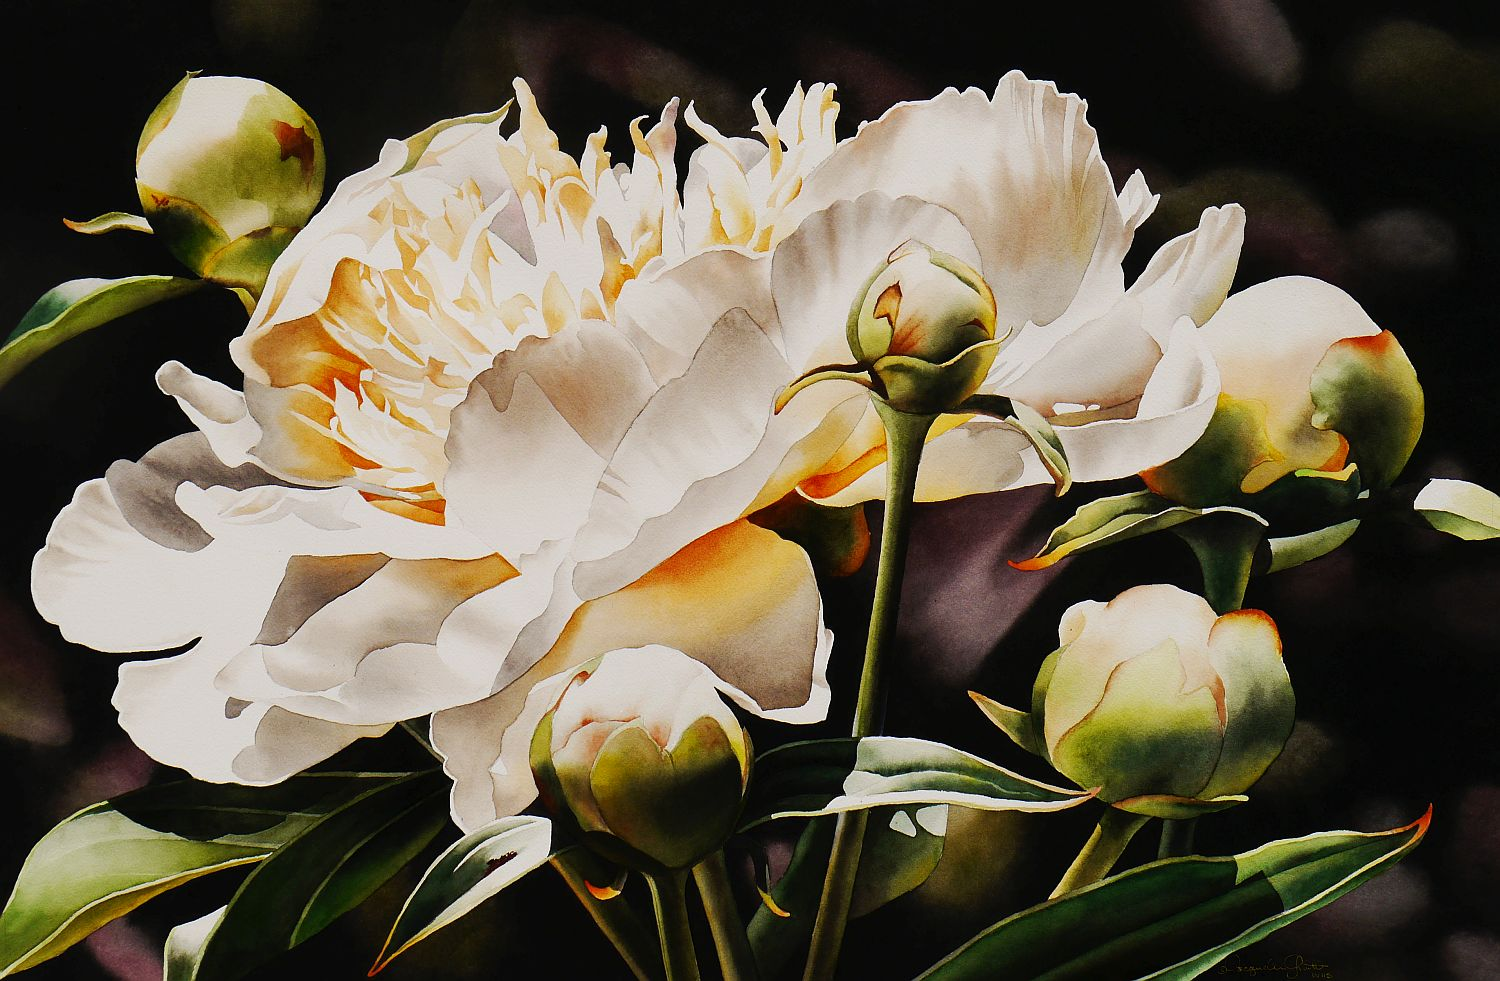 Contemporary Realism: White Peony with Buds